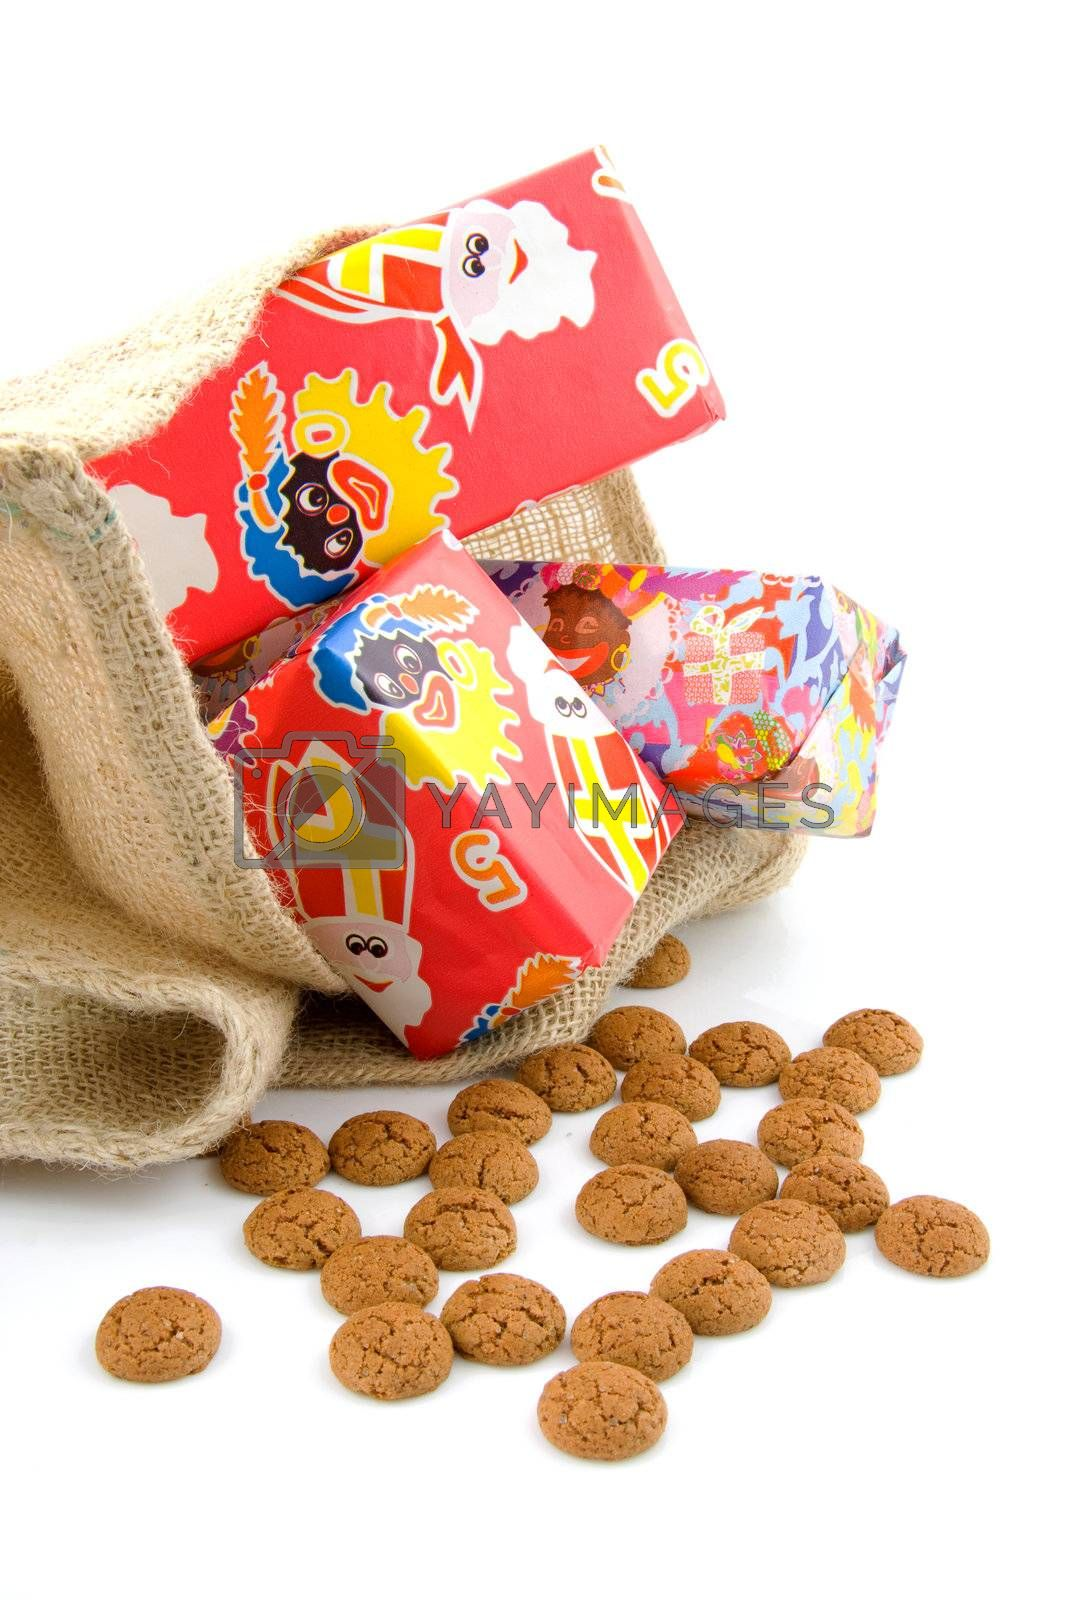 Typical Dutch celebration: Sinterklaas with surprises in bag and ginger nuts, ready for the kids in december